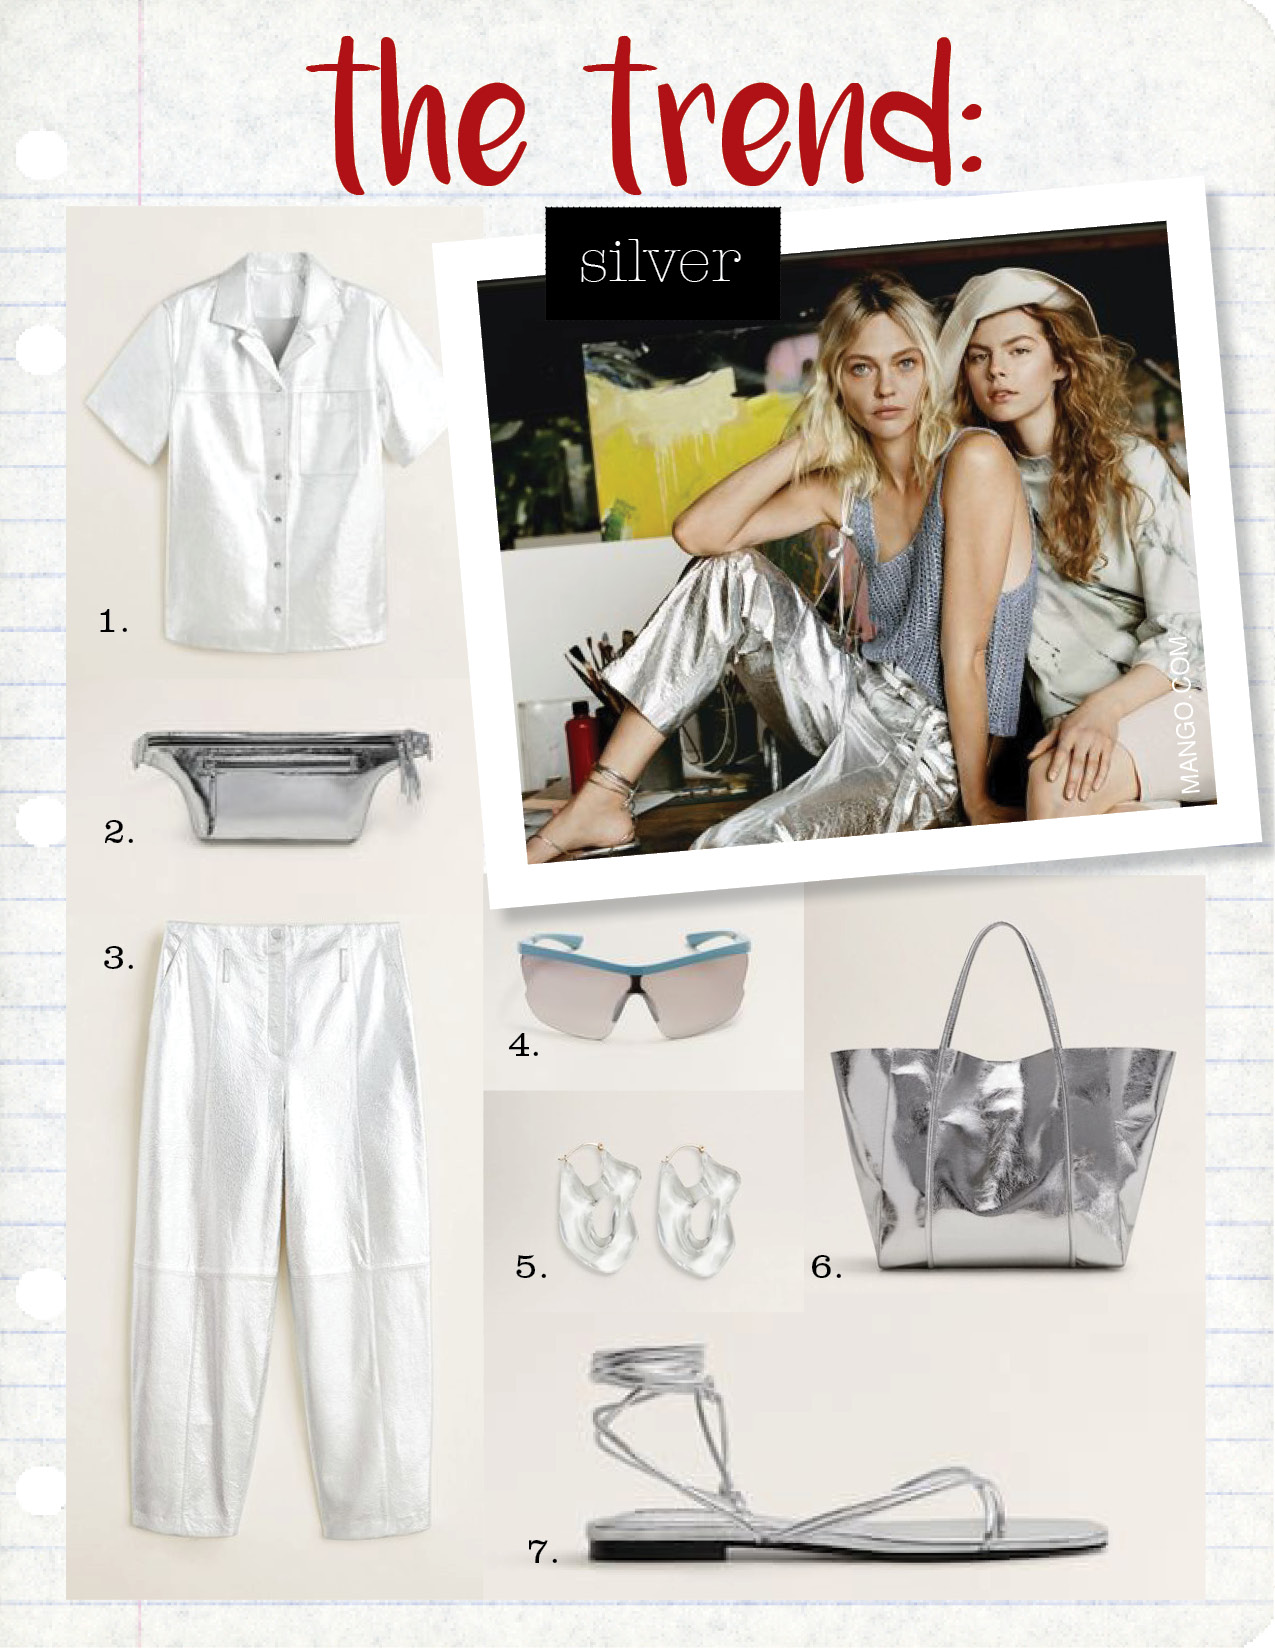 1. mango metallic leather top, $299,  shop.mango.com  2. mango metallic belt bag, $49,  shop.mango.com  3. mango metallic leather trousers, $299,  shop.mango.com  4. mango cyclist sunglasses, $39,  shop.mango.com  5. mango transparent earrings, $29,  shop.mango.com  6. mango metallic-effect shopper bag, $69,  shop.mango.com  7. mango criss-cross straps sandals, $59,  shop.mango.com